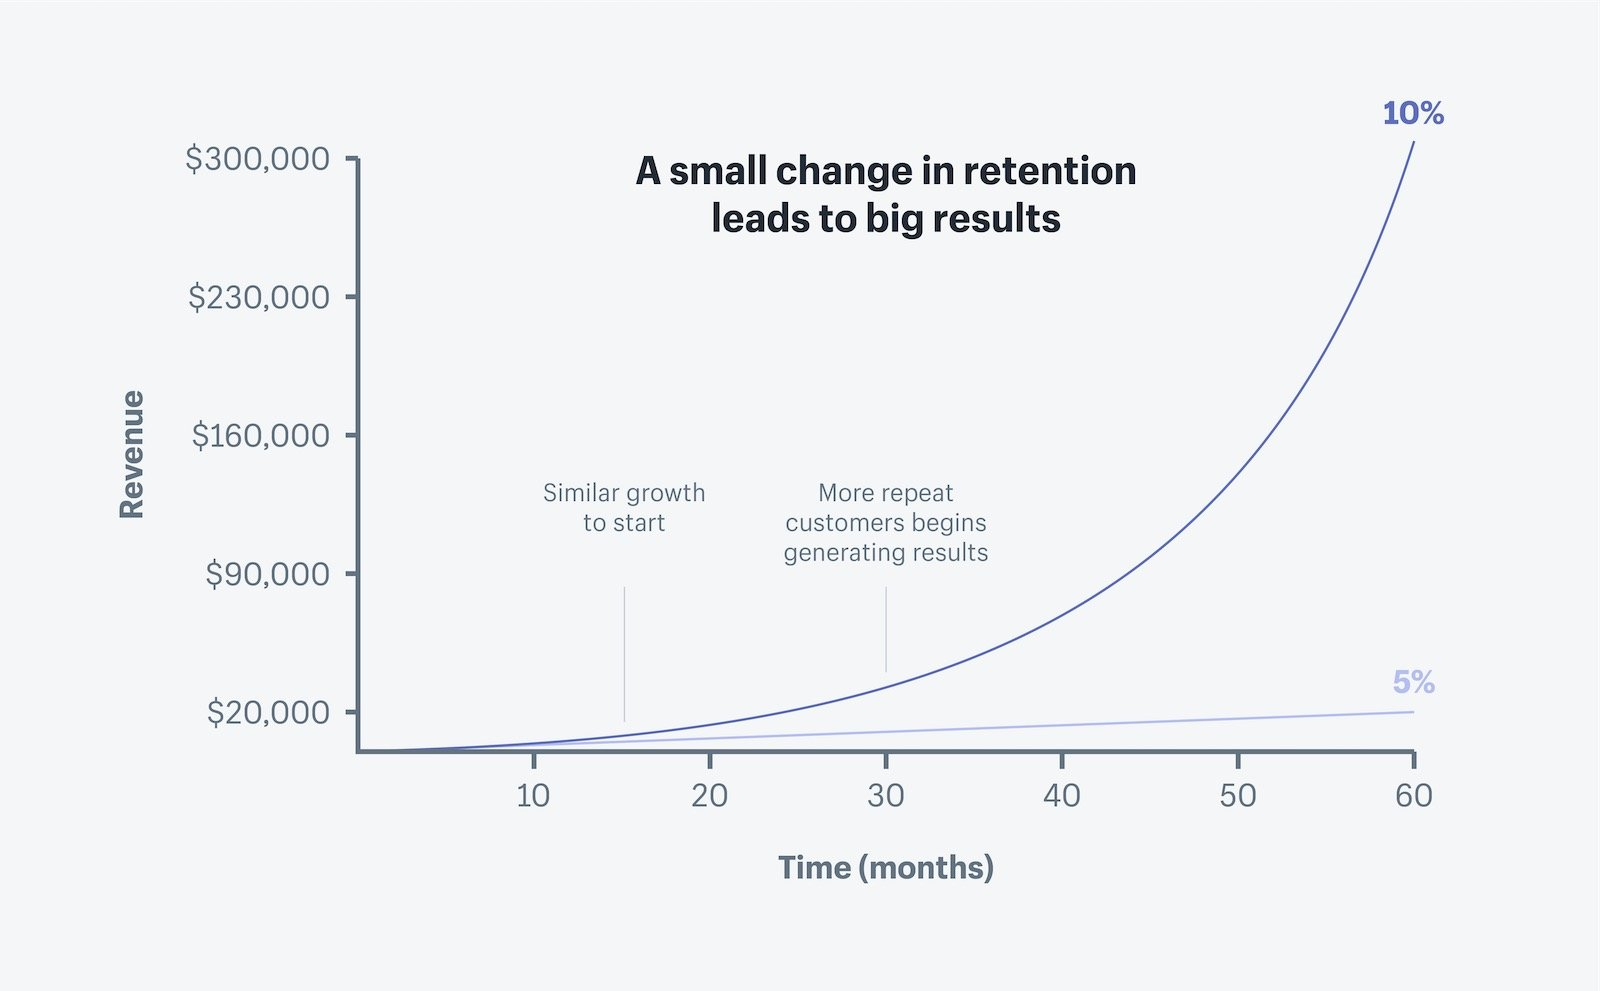 Revenue over time graph